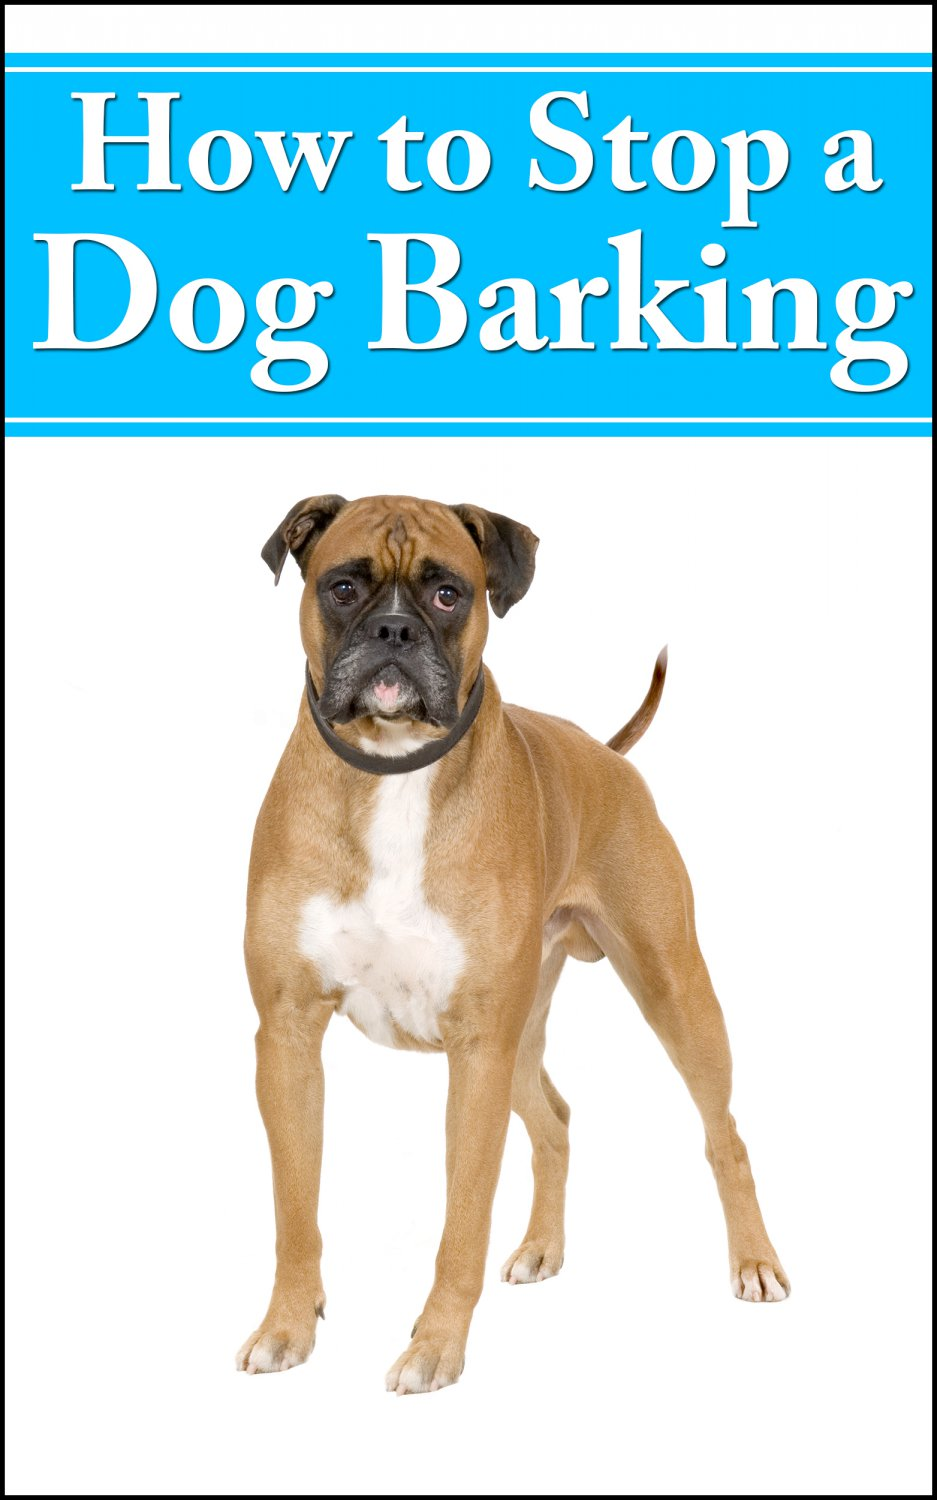 HOW TO STOP DOG BARKING - Methods to Stop Your Dog�s Excessive Barking - eBook